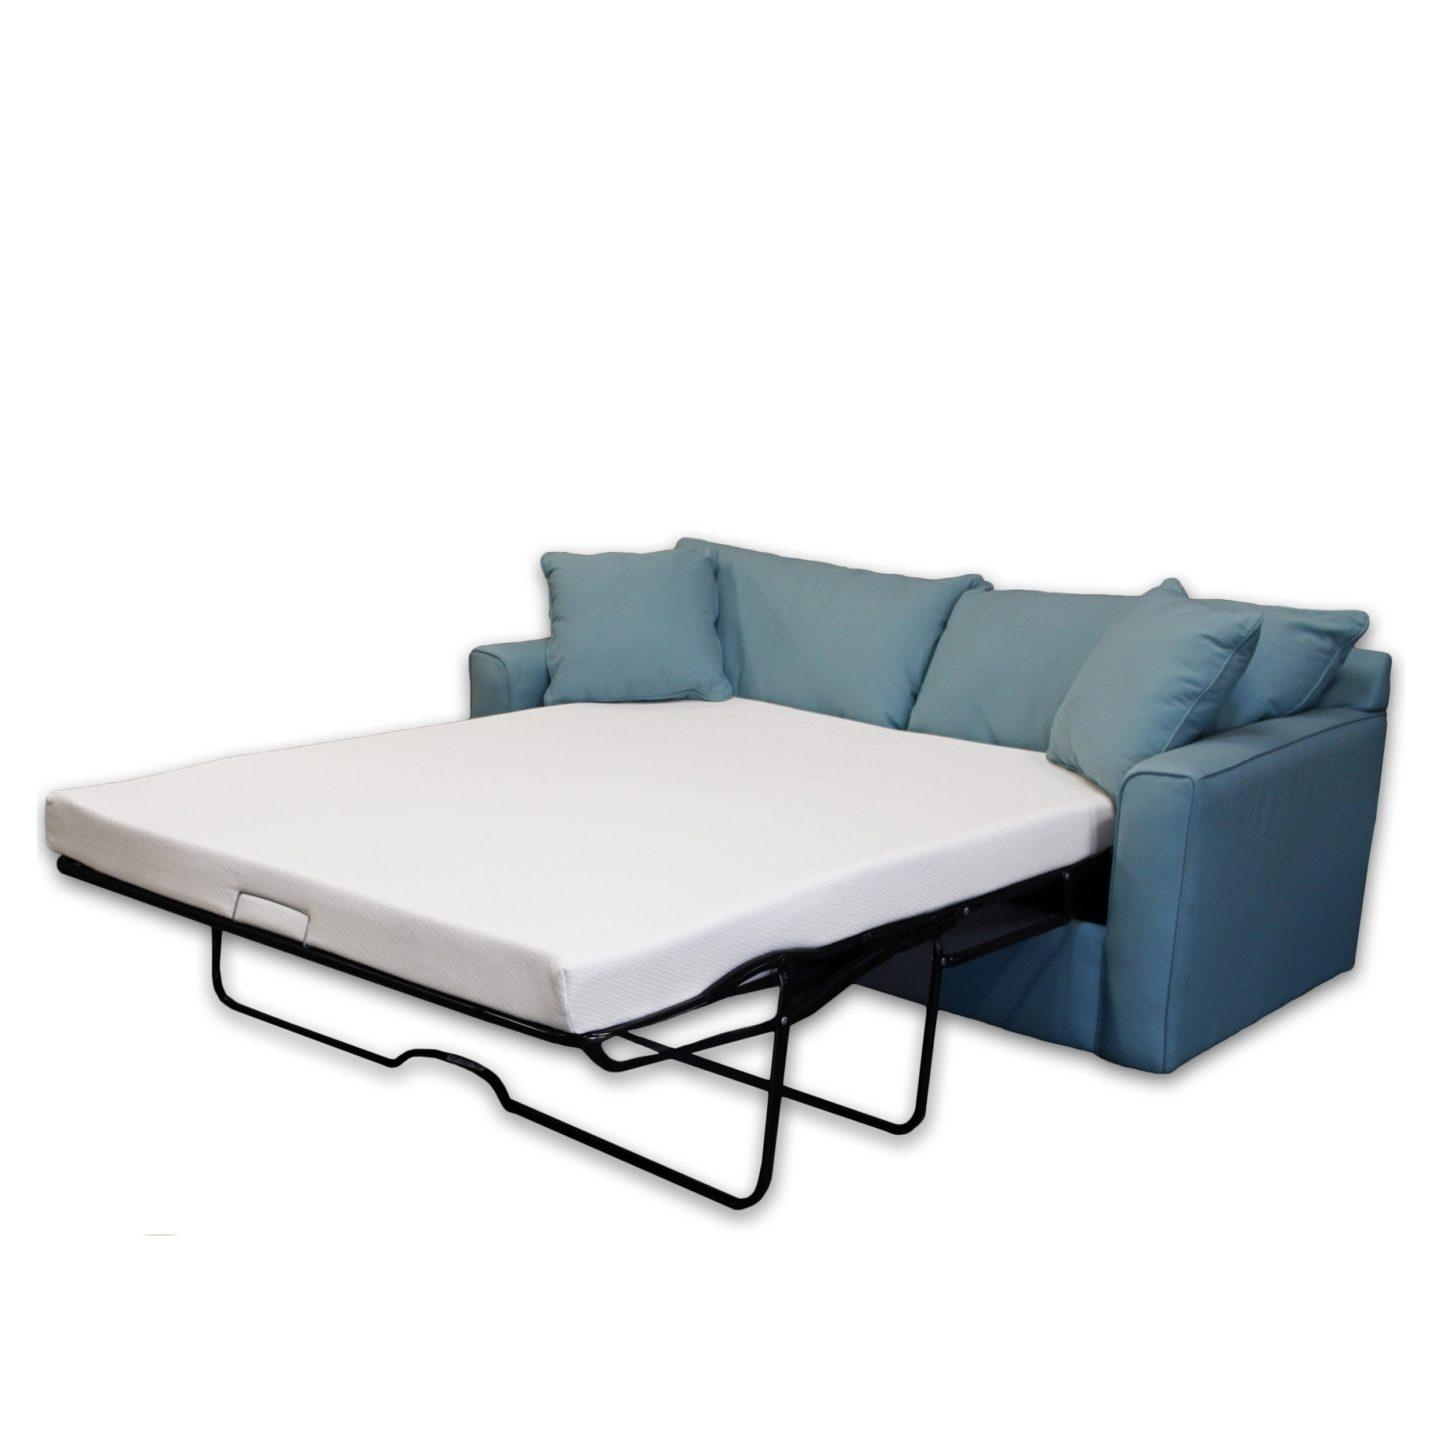 How To Make A Pull Out Sofa Bed More Comfortable – Overstock With Regard To Sofa Sleeper Sheets (Image 3 of 20)